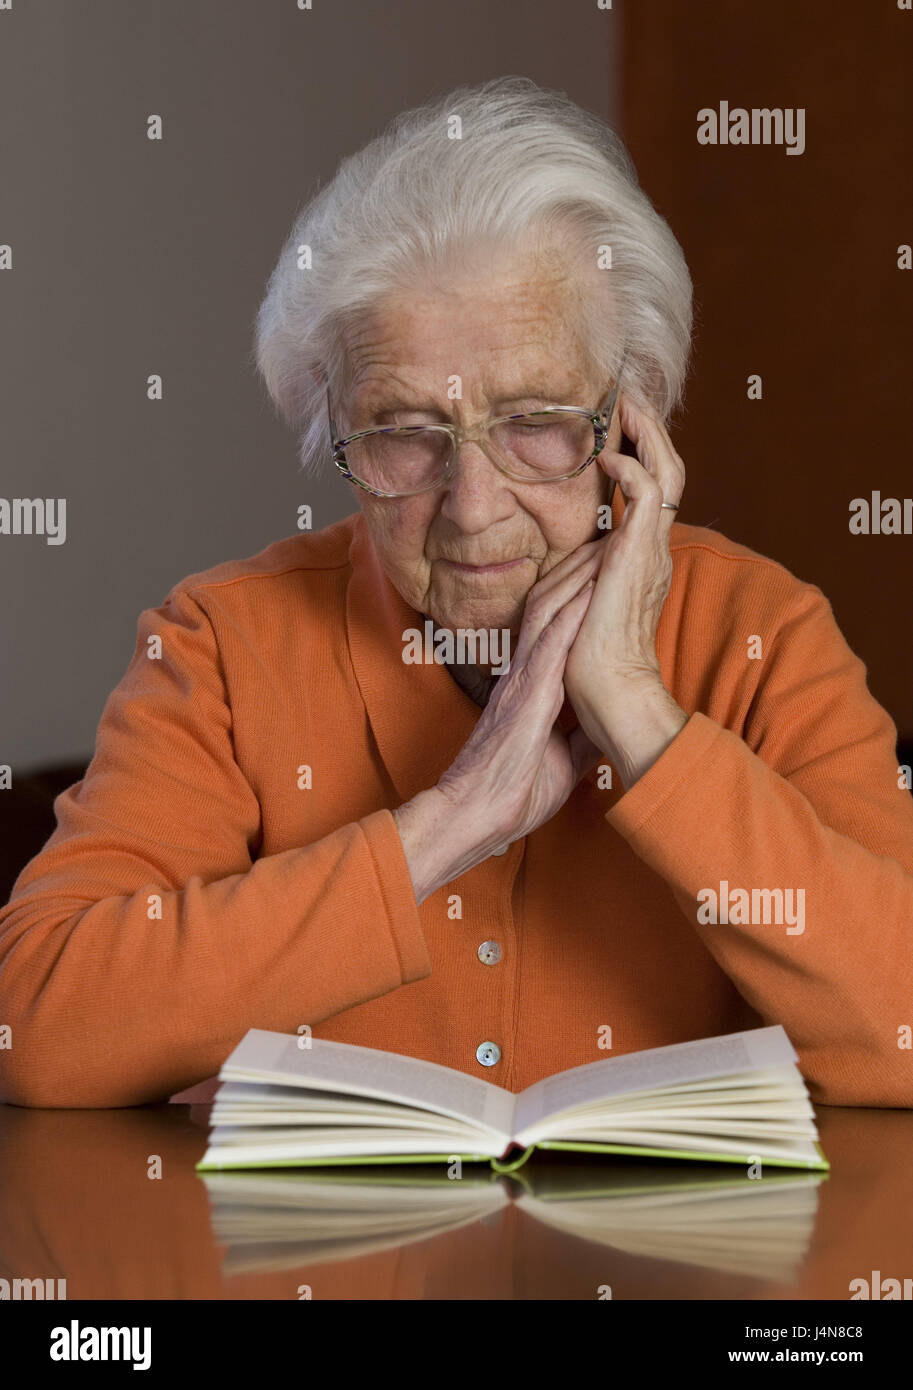 Senior, table, sit, read book, concentration, person, pensioner, woman, glasses, view, leisure time, hobby, activity, - Stock Image